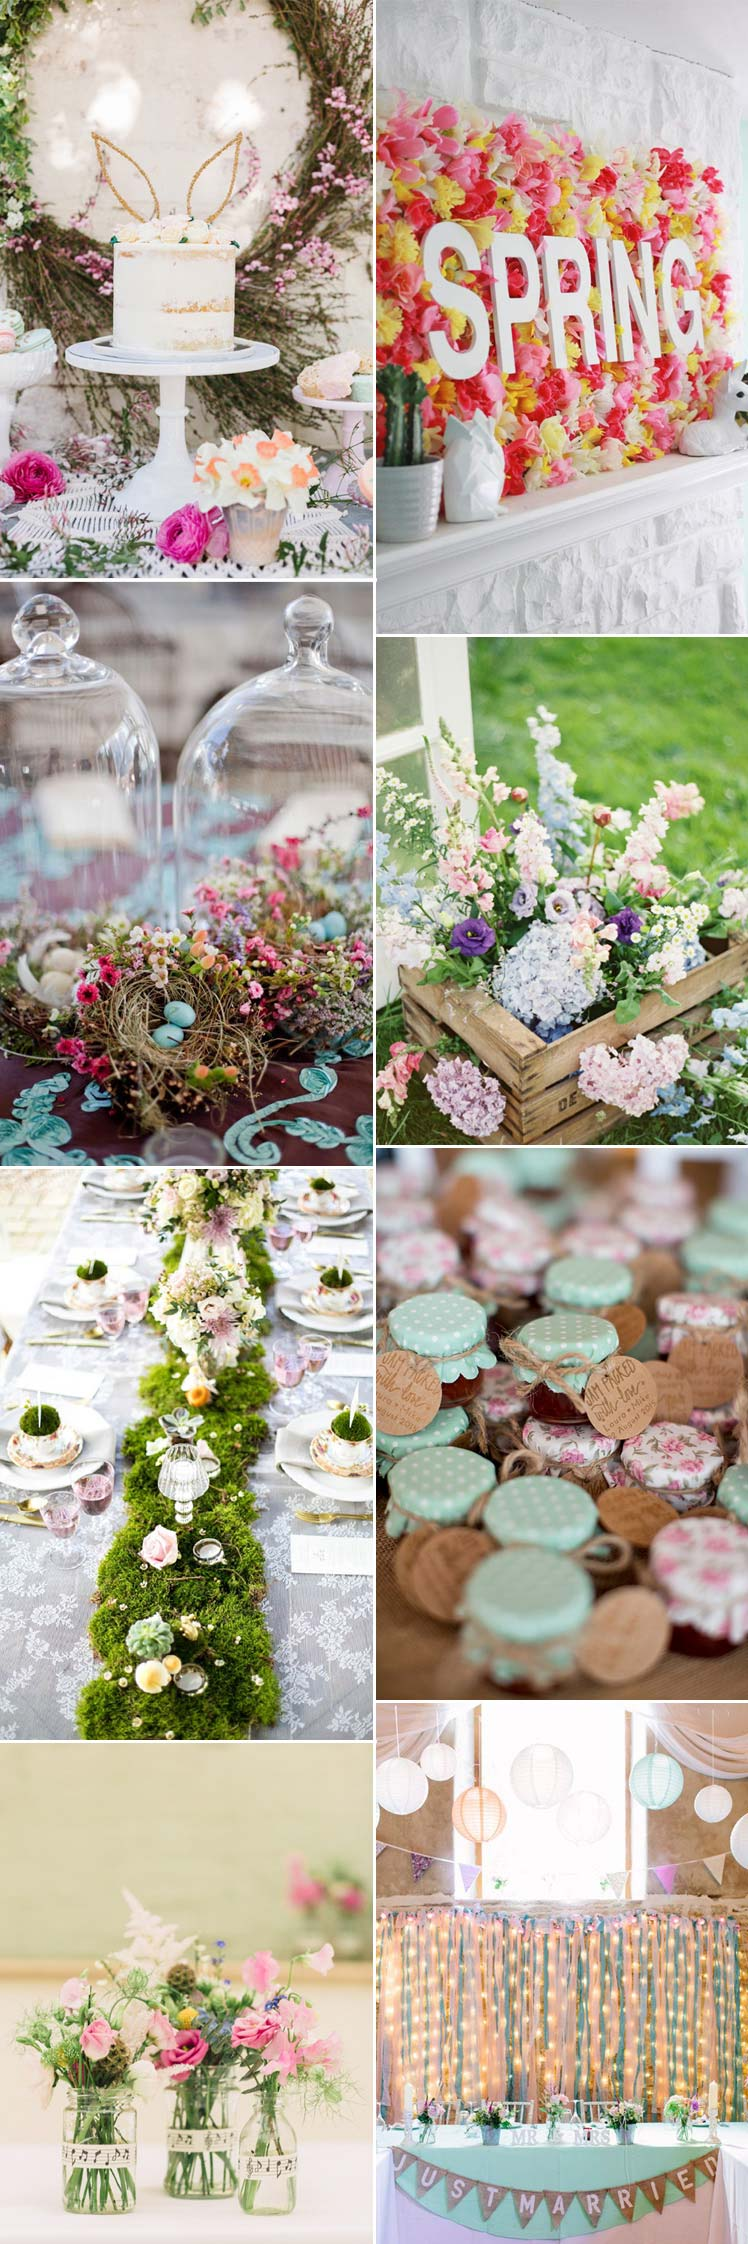 Beatuiful pastel Easter wedding ideas